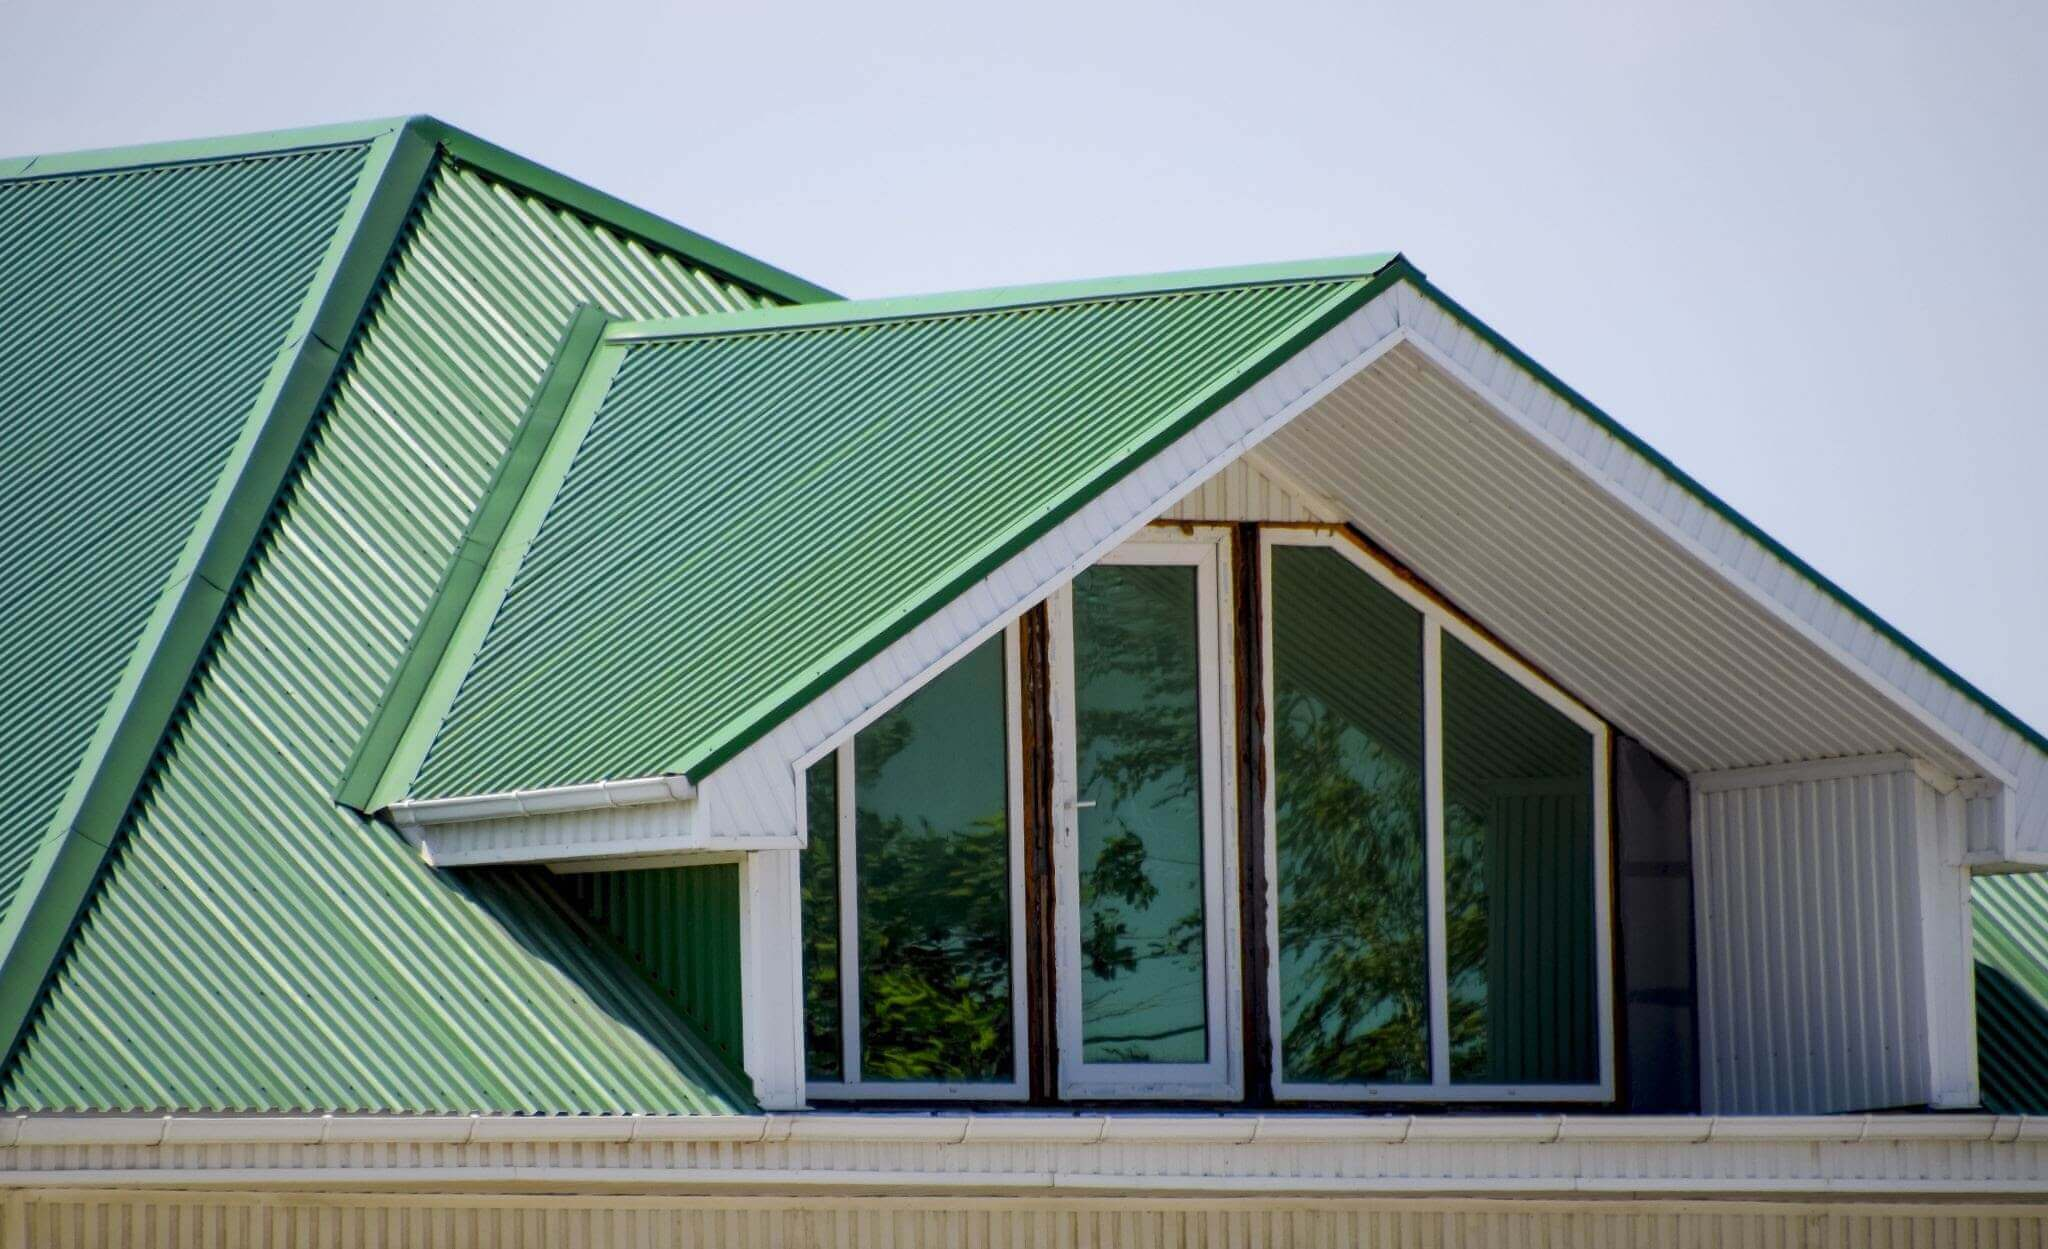 Green metal roof on building